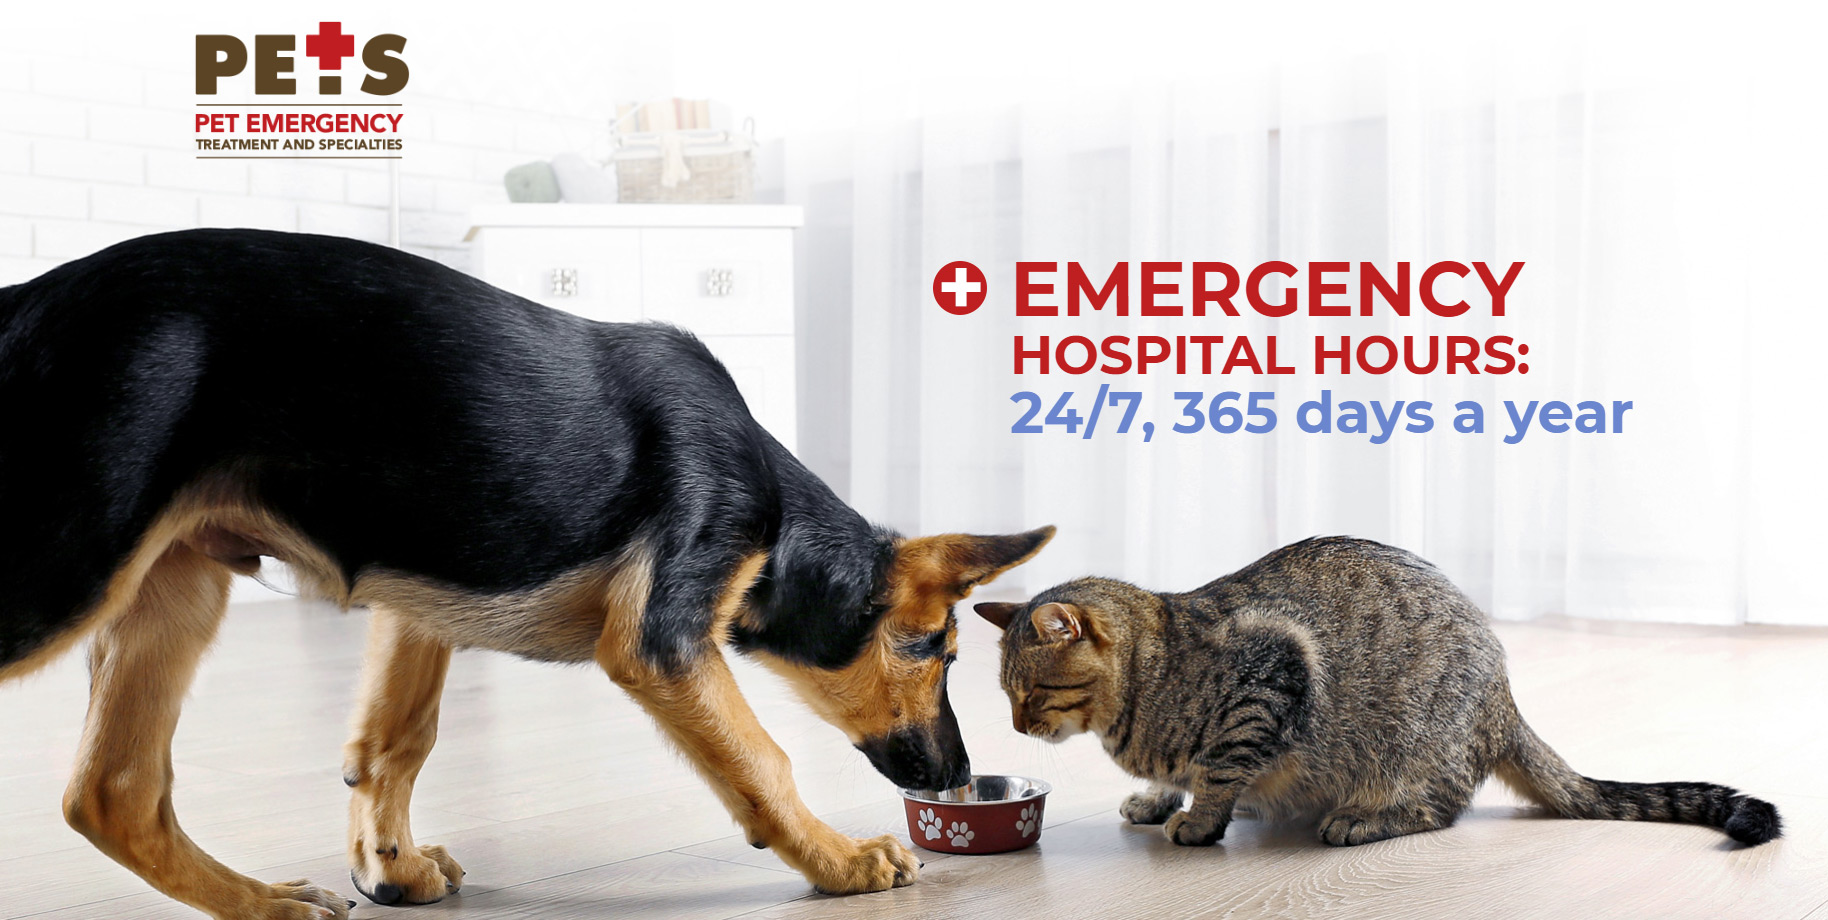 Home | Pet Emergency Treatment and Specialties